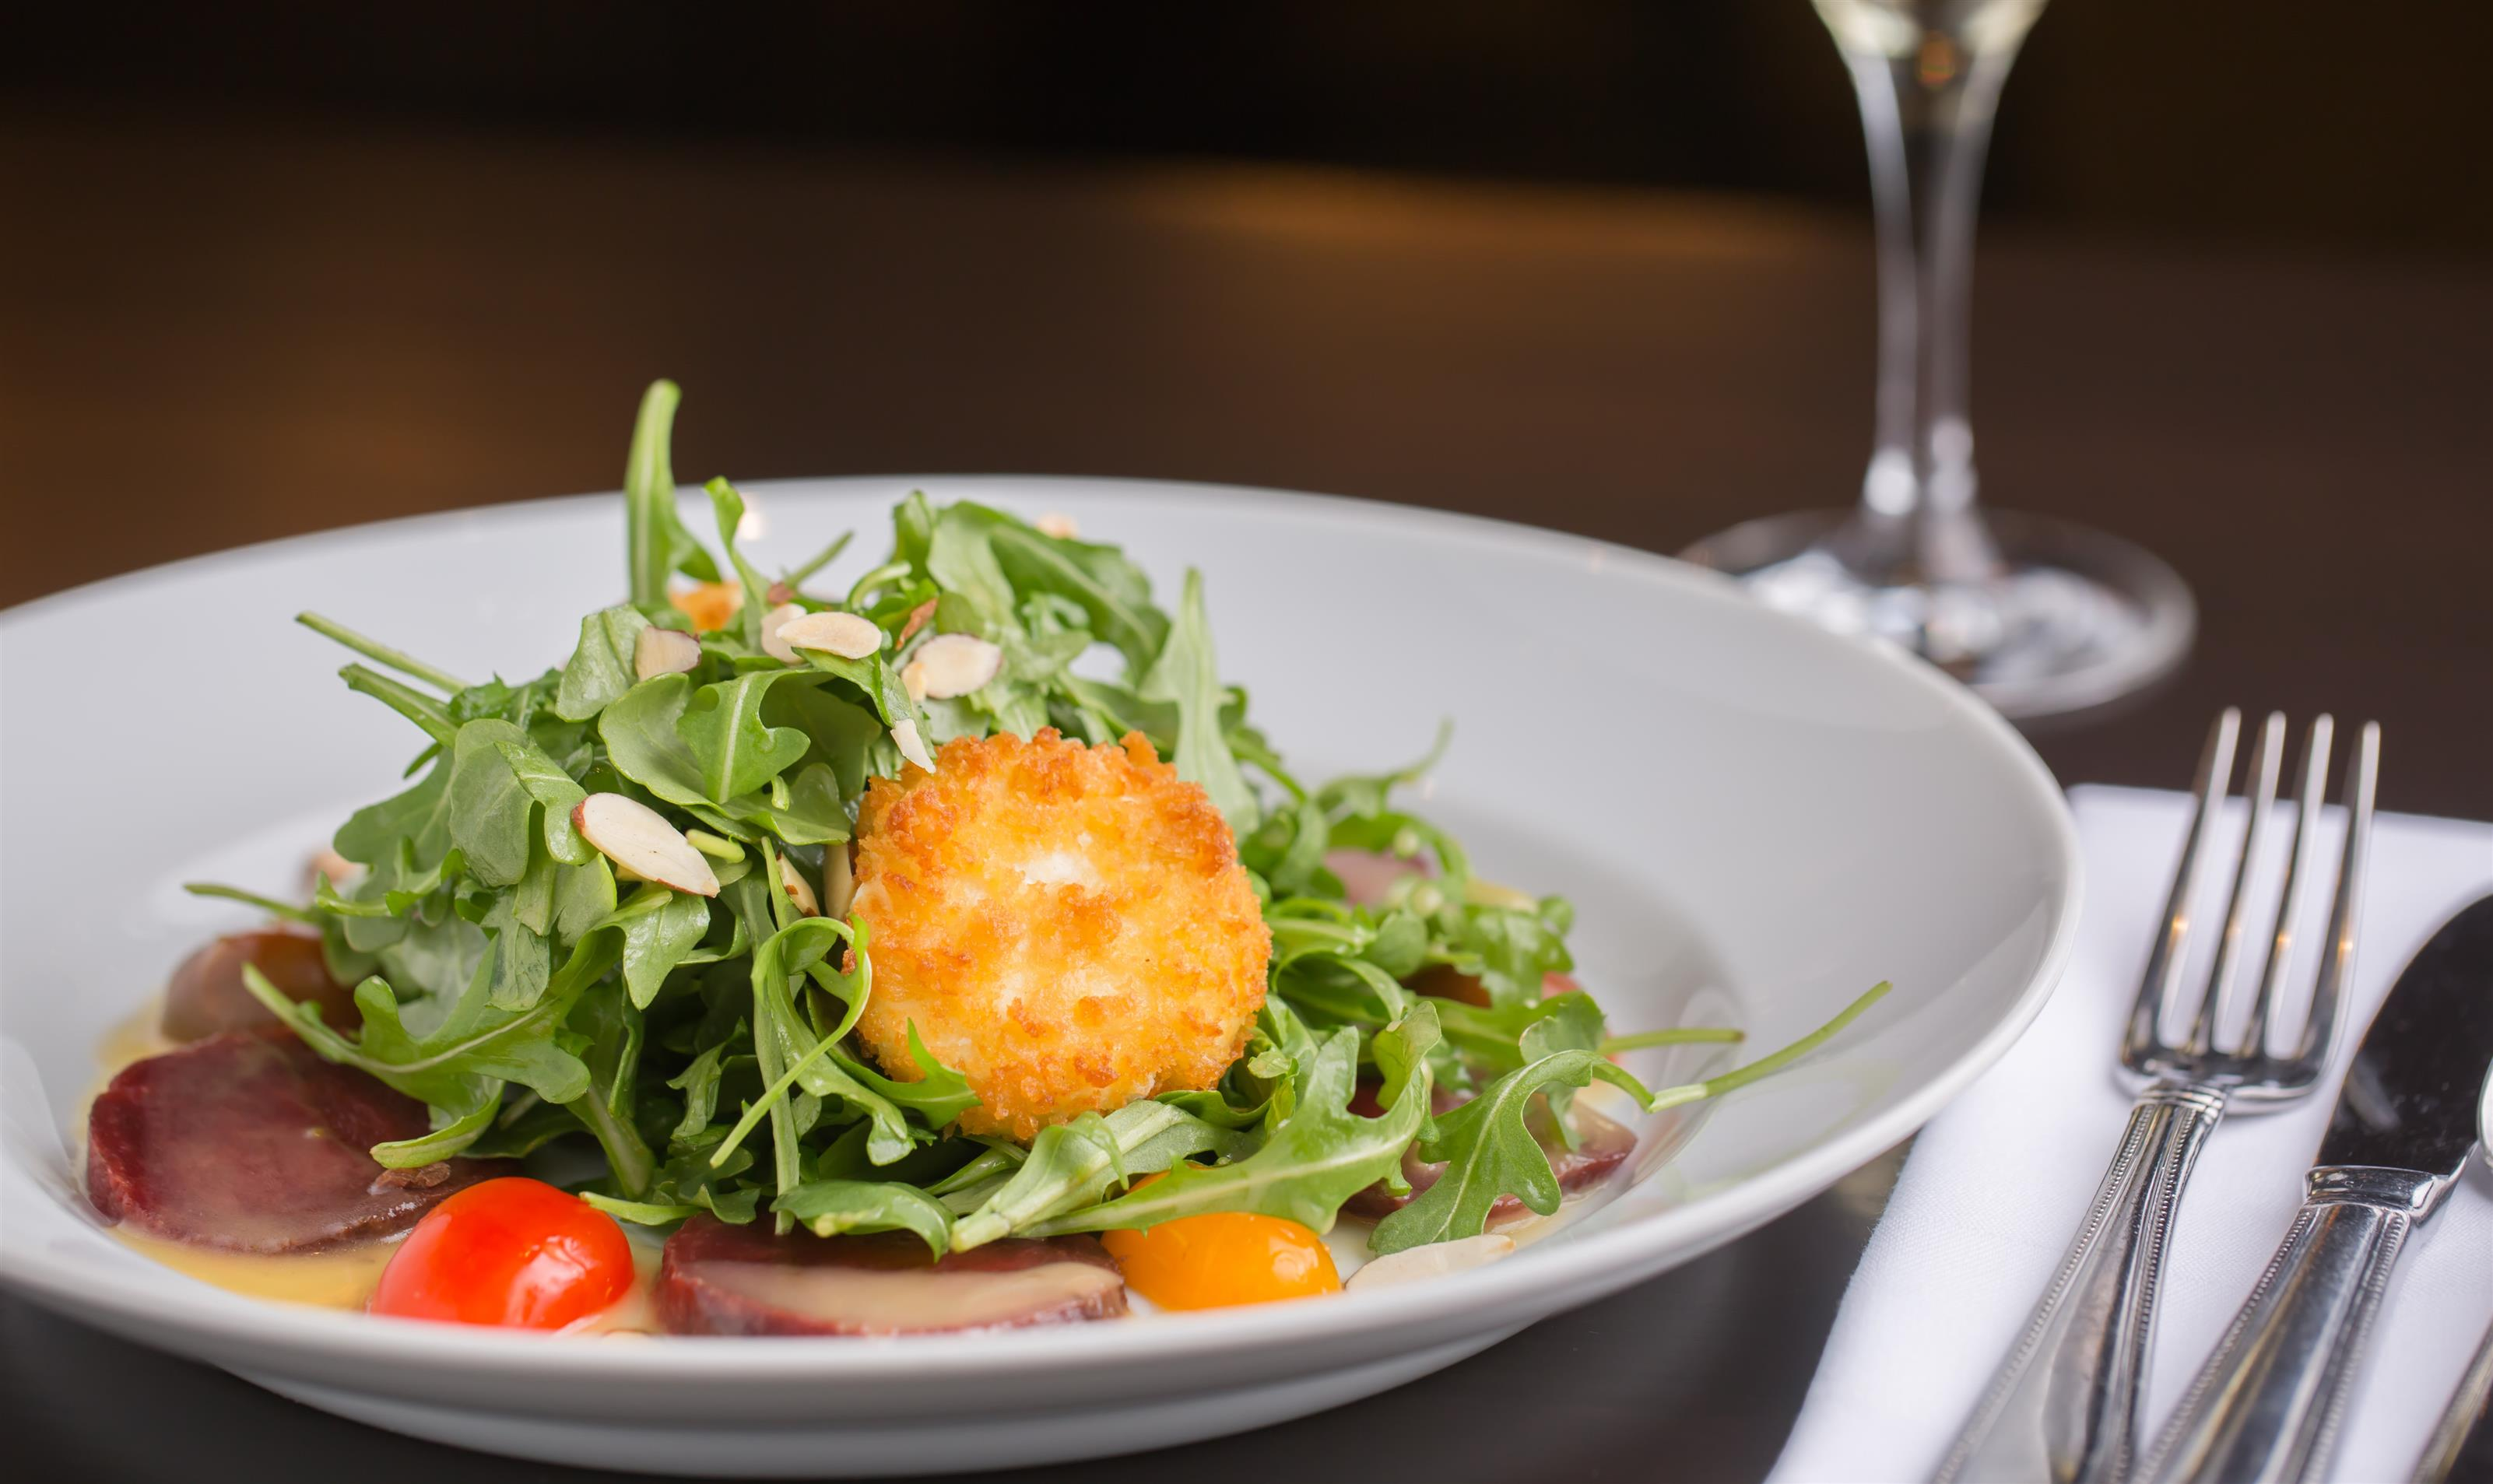 21 Lake Salad. arugula. flash fried goat cheese. beets. tomatoes. almonds. honey citrus vinaigrette.